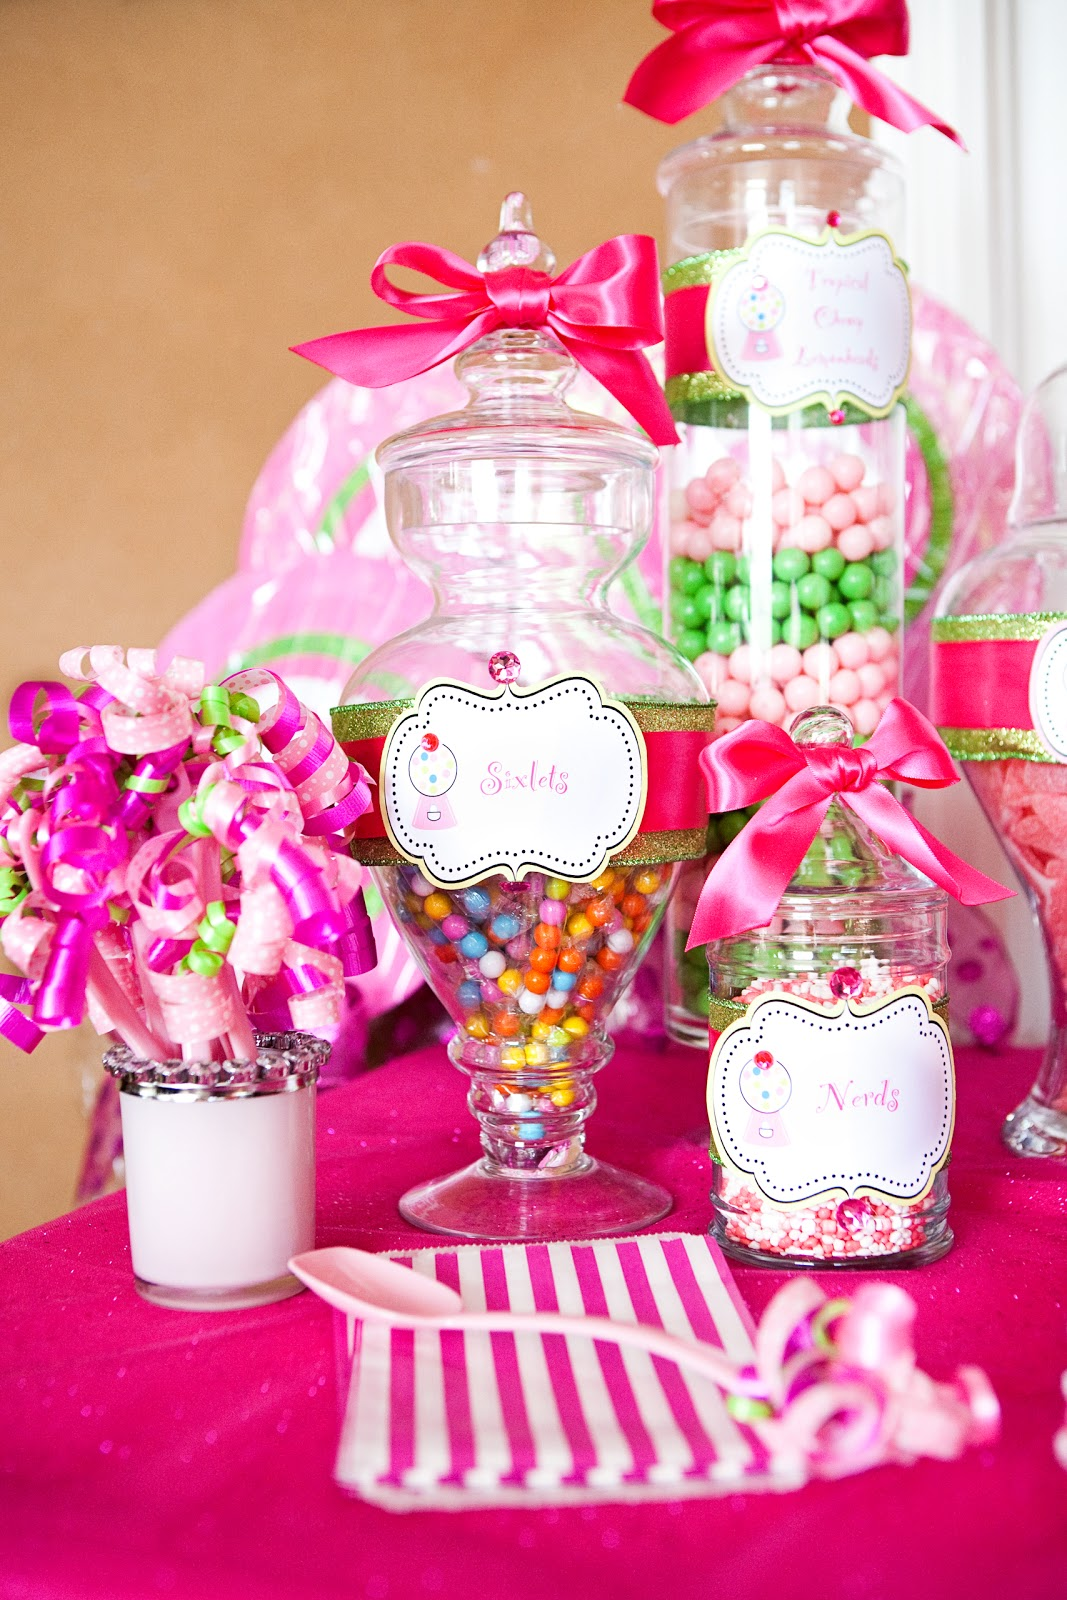 The tomkat studio sweet customers pink sweet shoppe birthday party